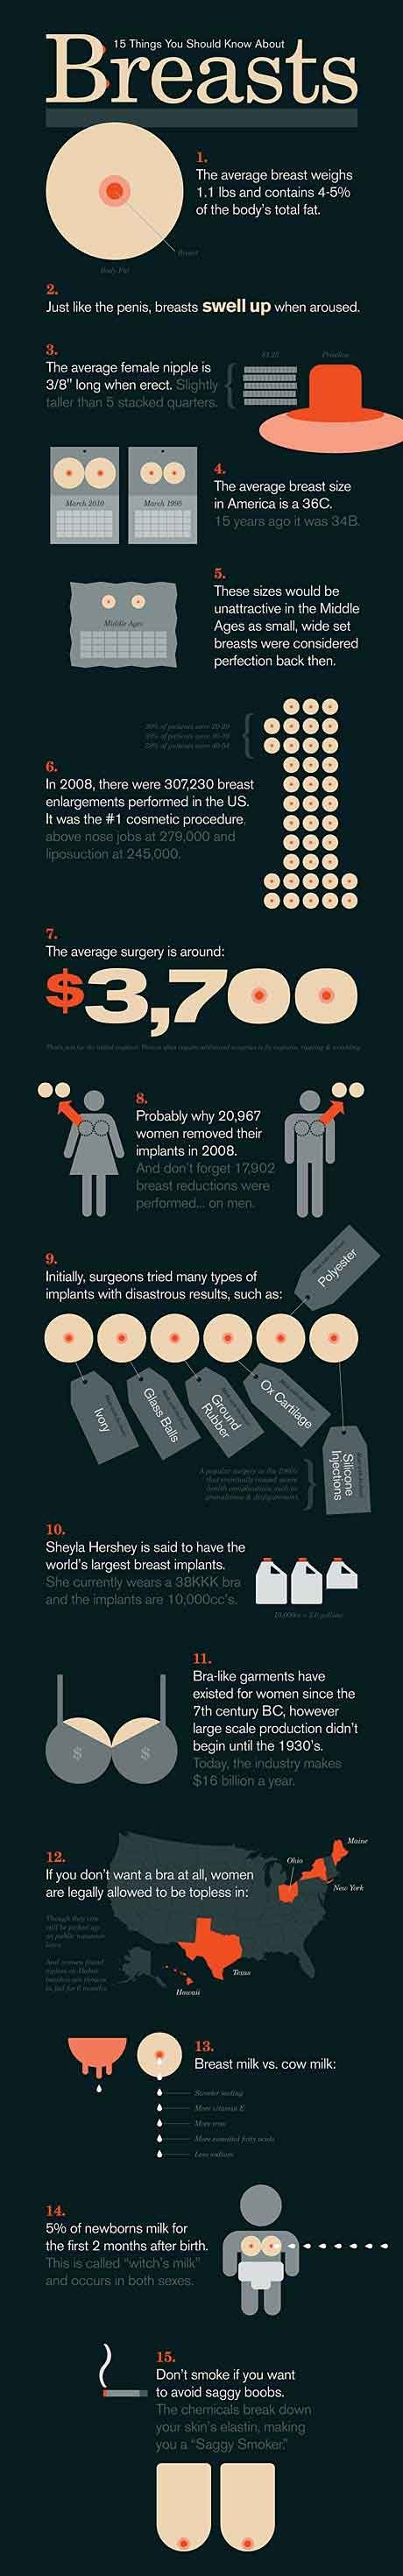 Boob Facts. not sure is or not..... f! 15 Things You Knaw About I The average breast weighs 1. 1 lbs and contains % st the body' s mat fat Just like the penis,